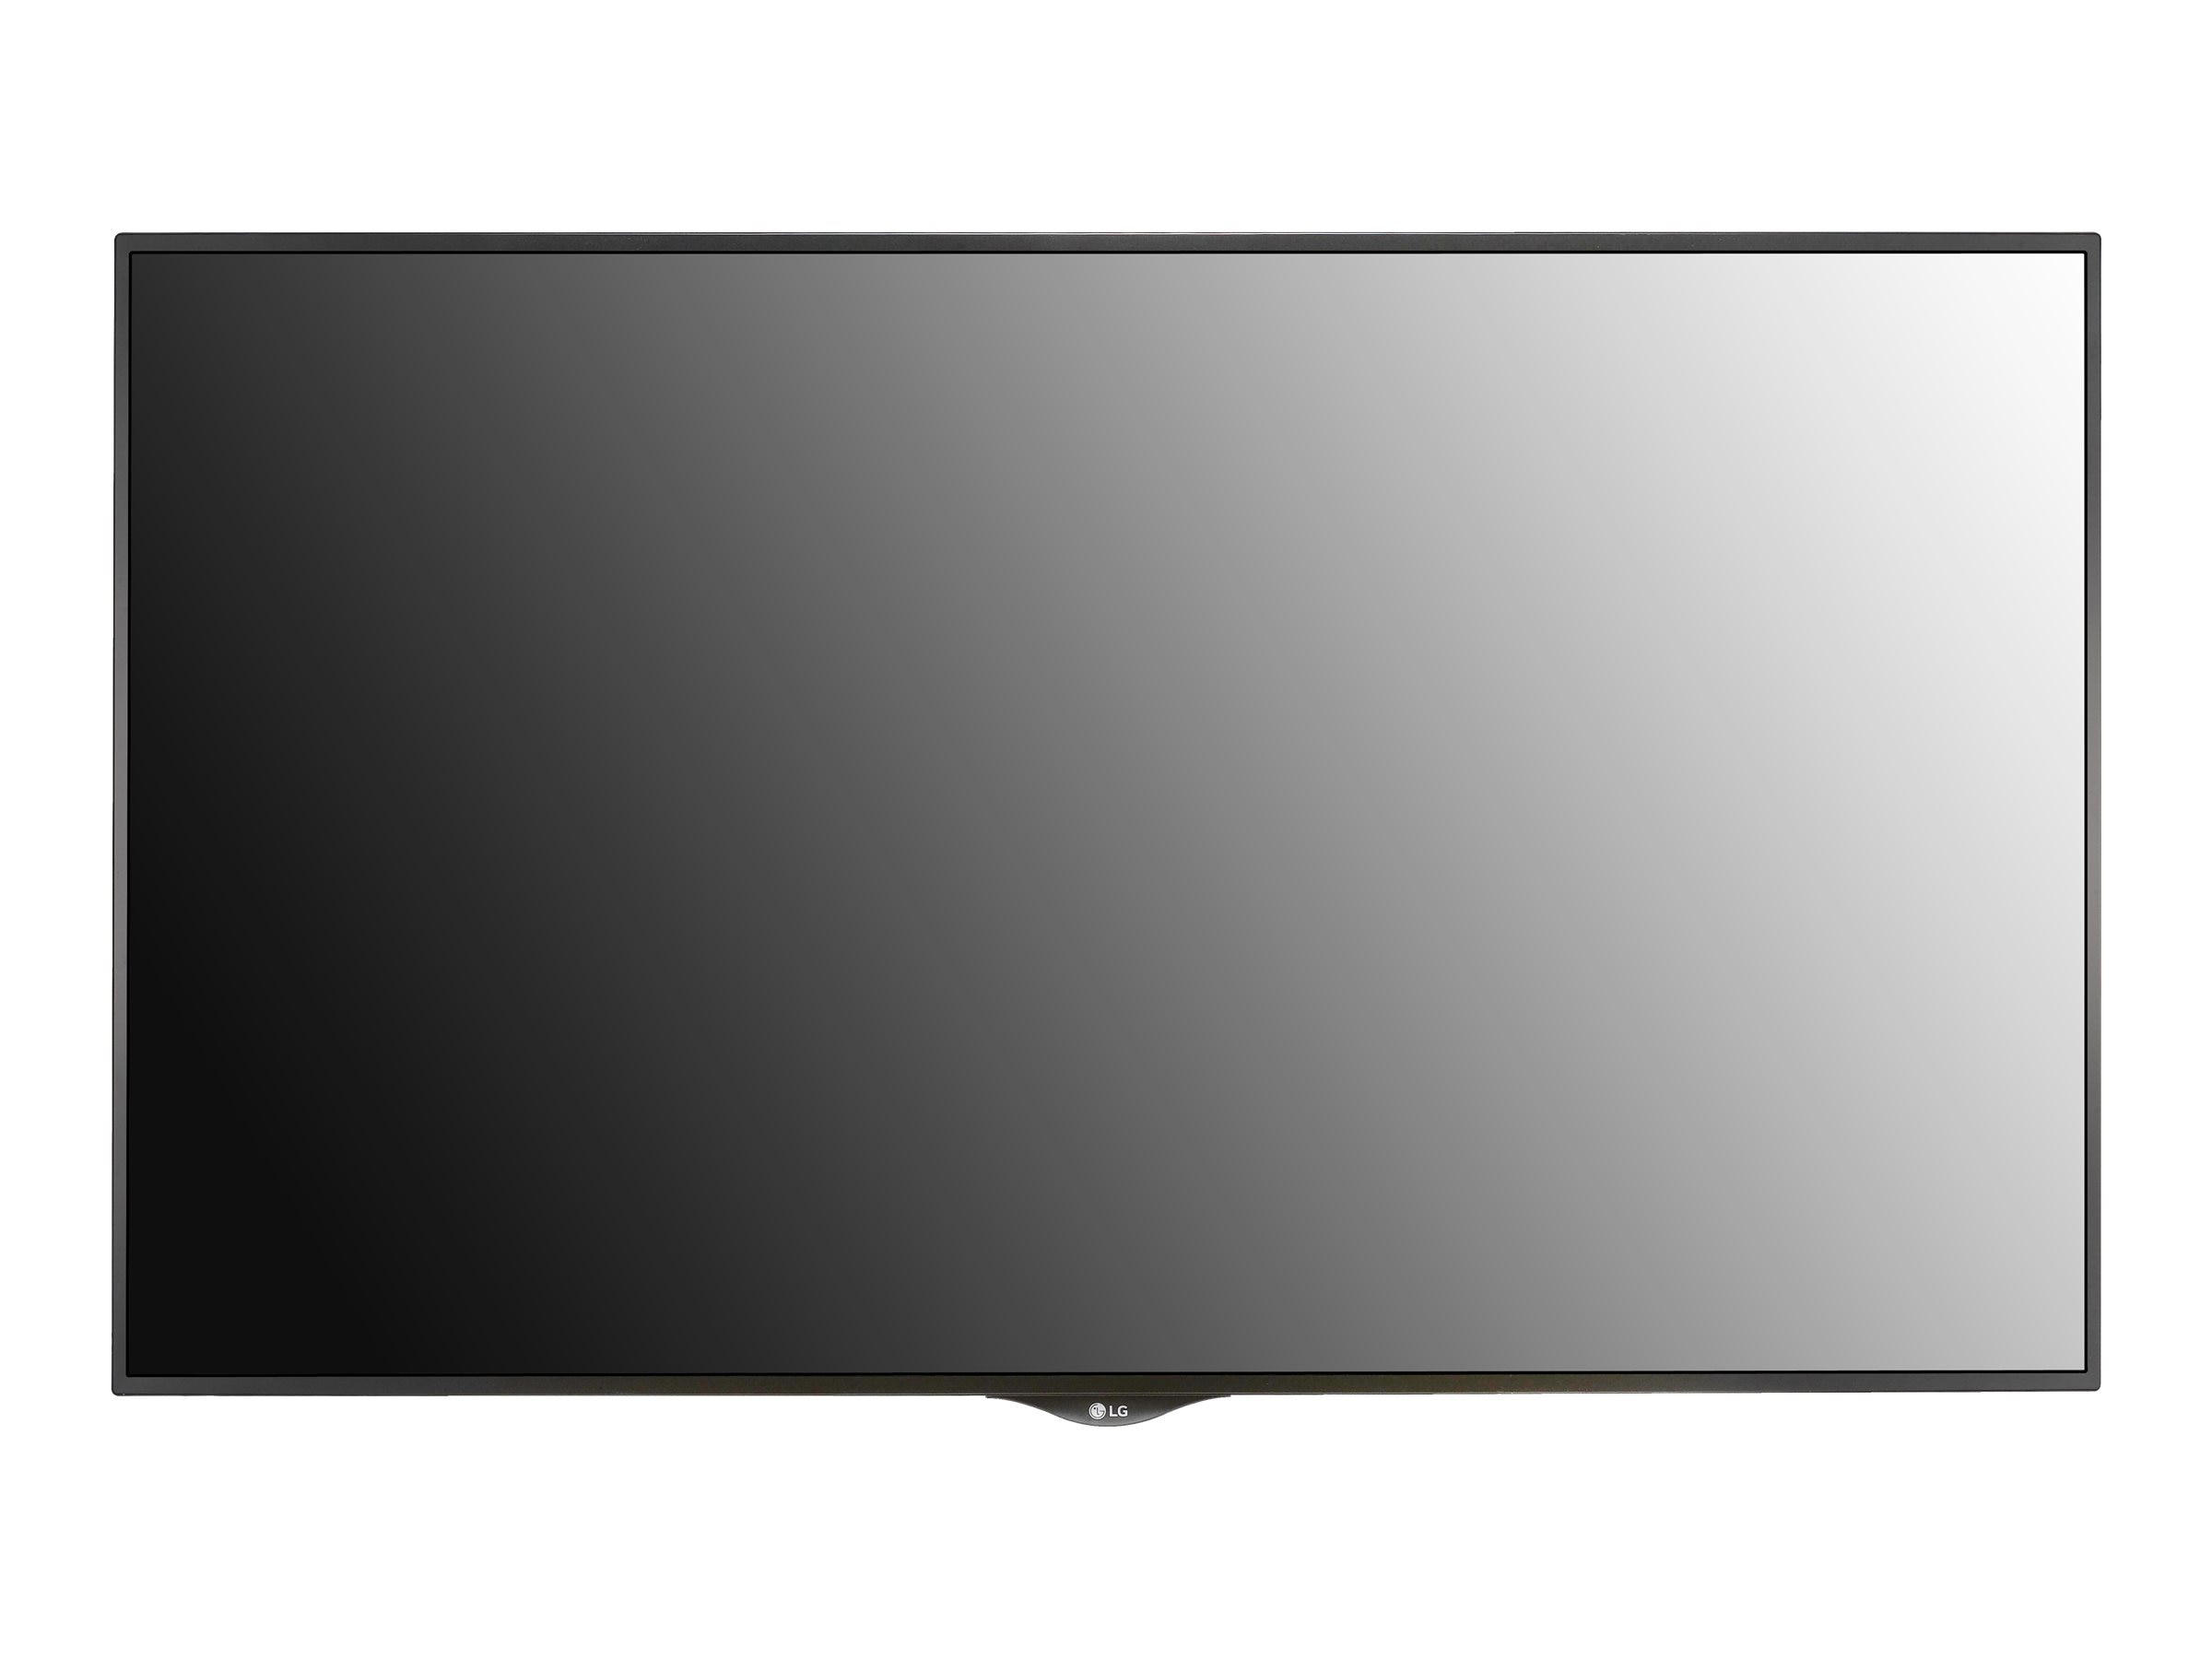 LG 49 XS2B-B Full HD LED-LCD Hospitality TV, Black, 49XS2B-B, 30597557, Televisions - LED-LCD Commercial